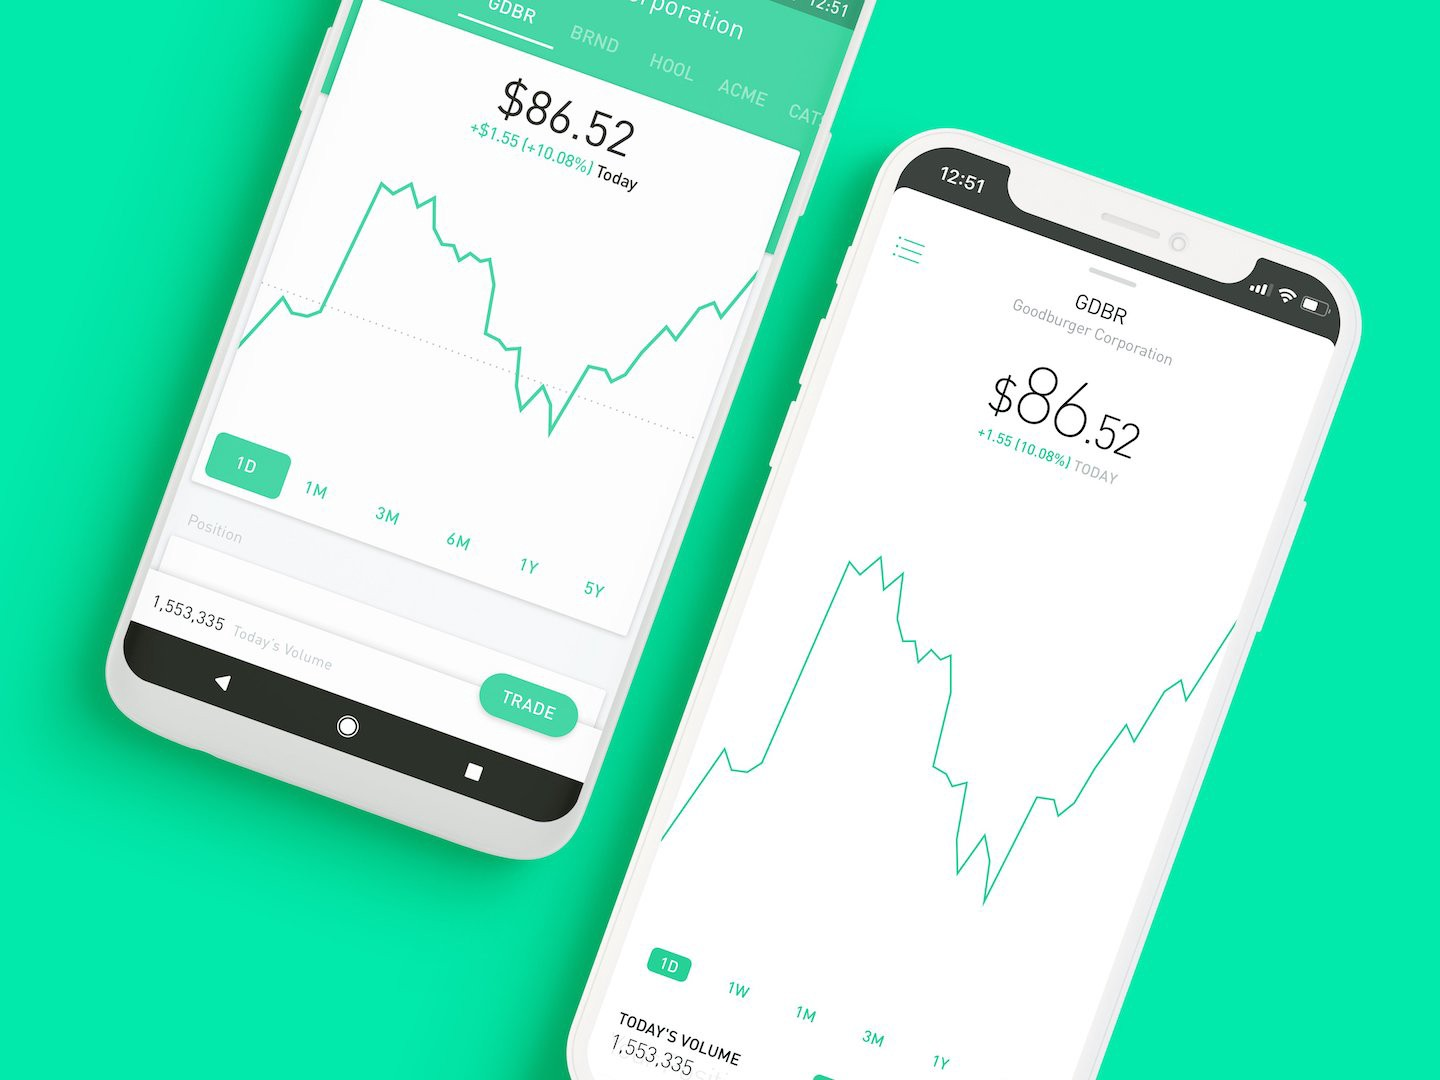 Robinhood Commission-Free Investing Grey Market Price